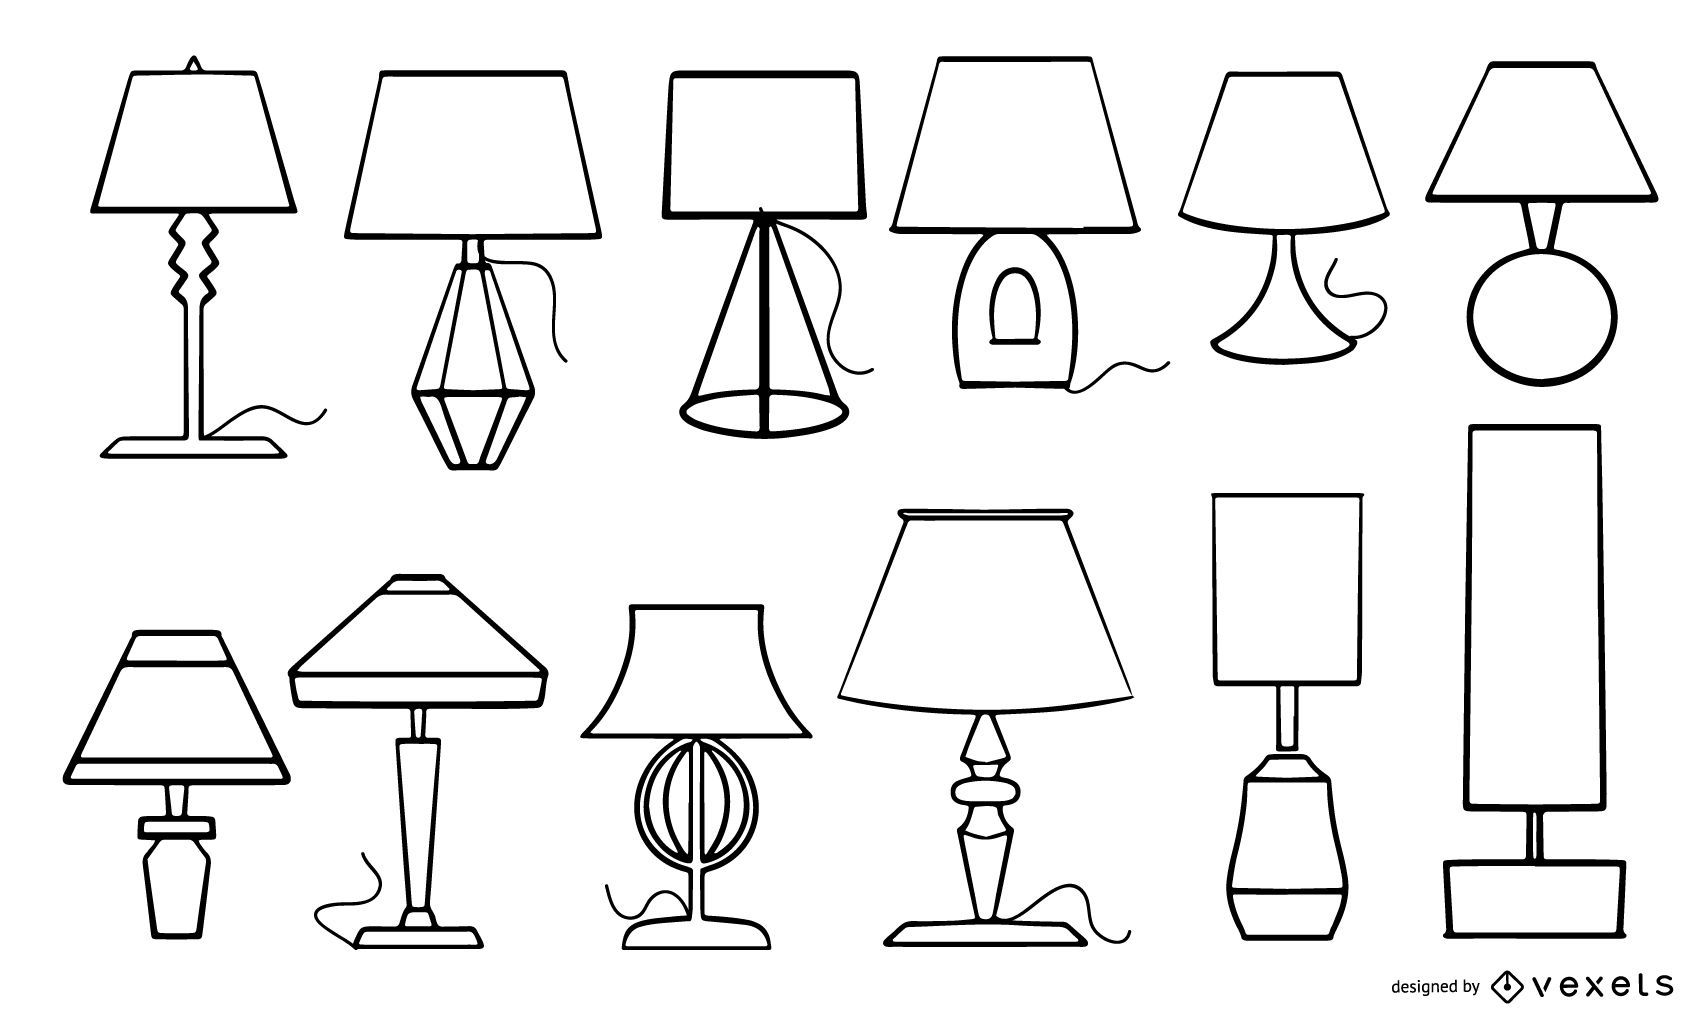 Desk lamps stroke collection